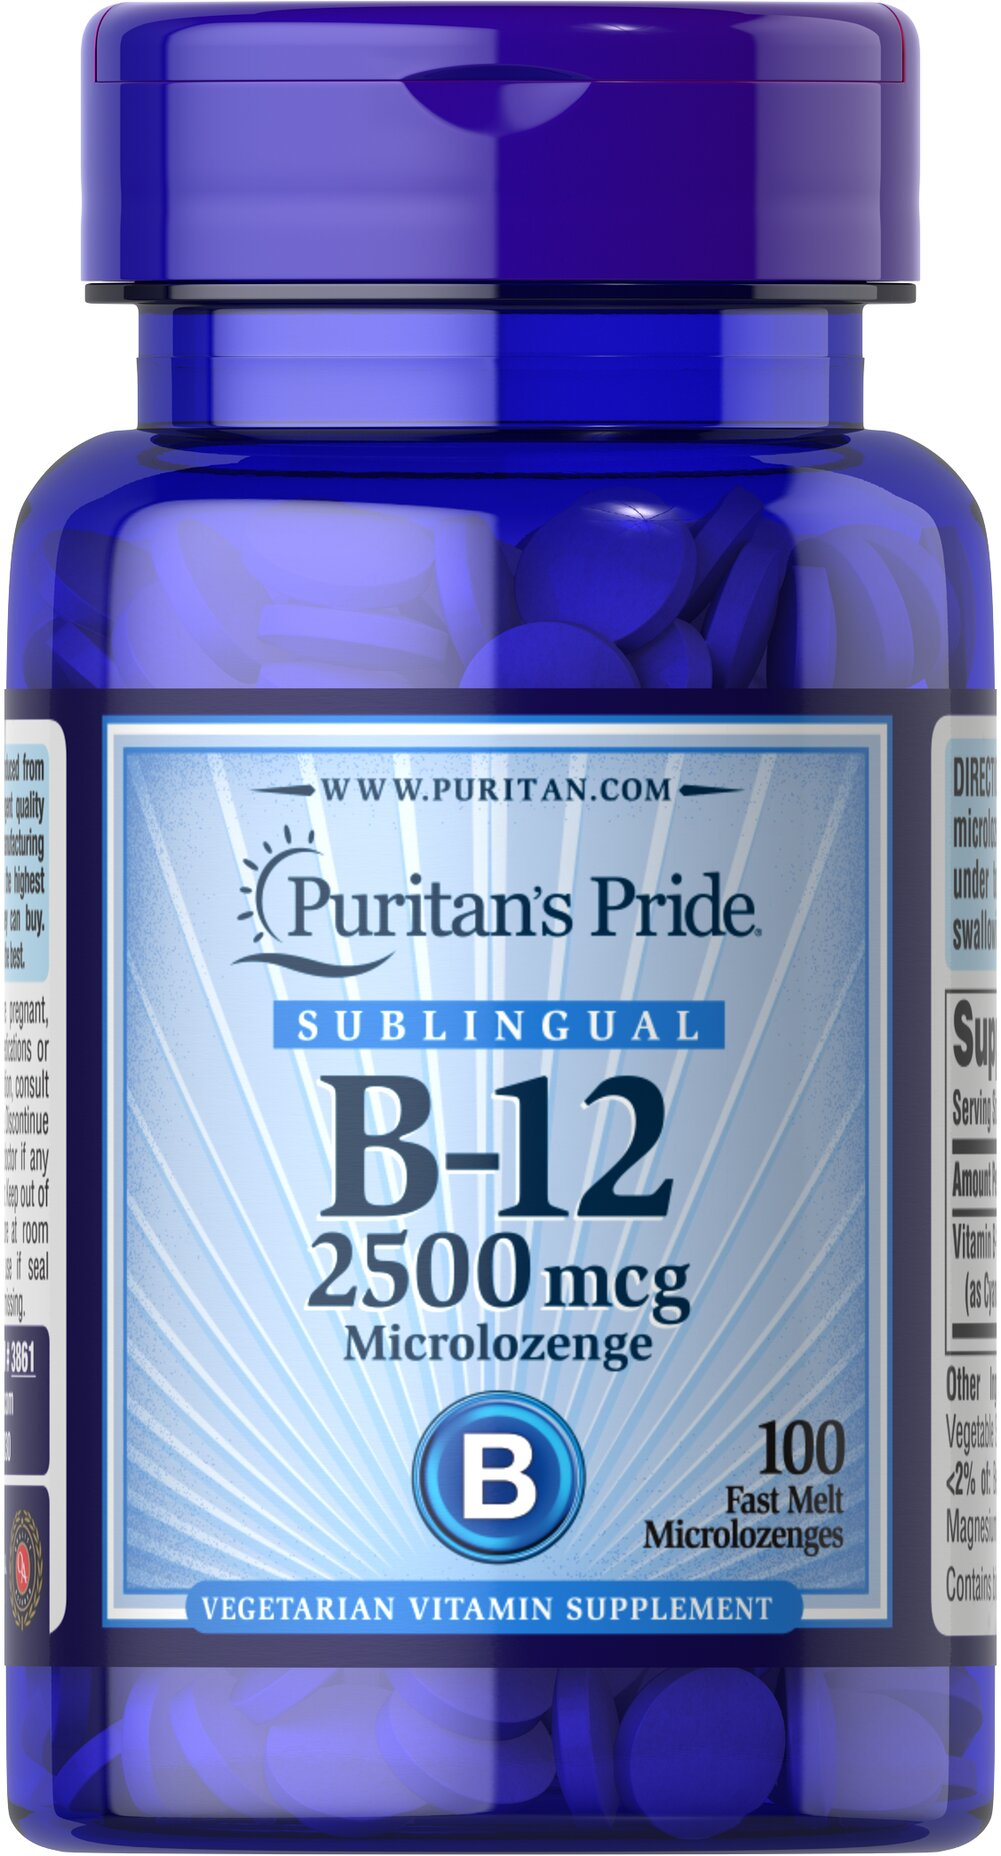 Vitamin B-12 2500 mcg Sublingual <p>Puritan's Pride's unique B-12  lozenges and dots deliver essential B vitamins for energy metabolism in the body.** Vitamin B-12 is also essential for the normal formation of blood cells, contributes to the health of the nervous system, and helps maintain circulatory health.** Adults can take one lozenge or dot daily with a meal. Place lozenge or dot under tongue for 30 seconds before swallowing.</p> 100 Microlozenges 2500 mcg $16.99